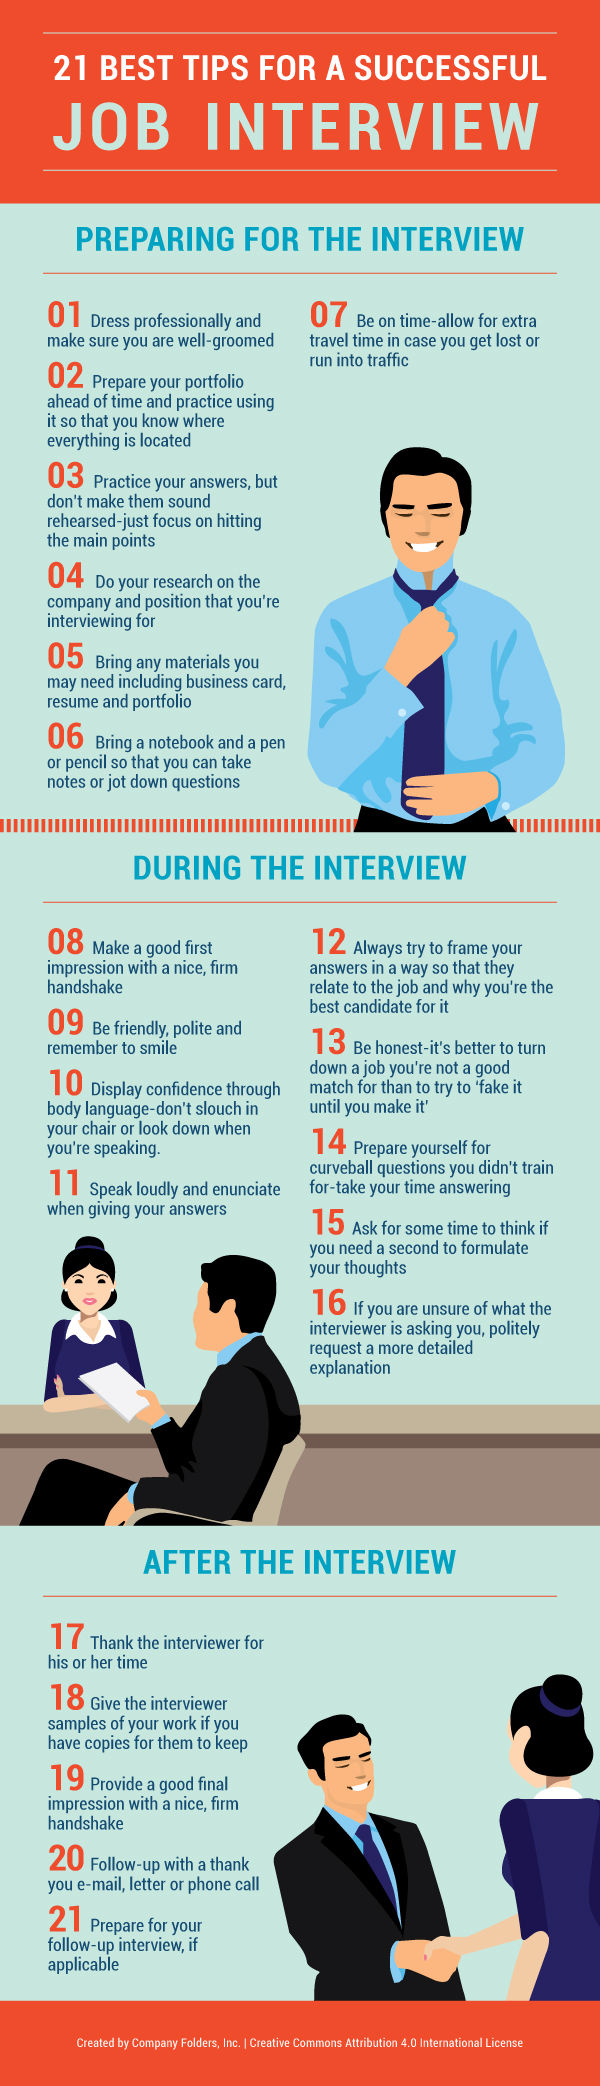 job-interview-tips1